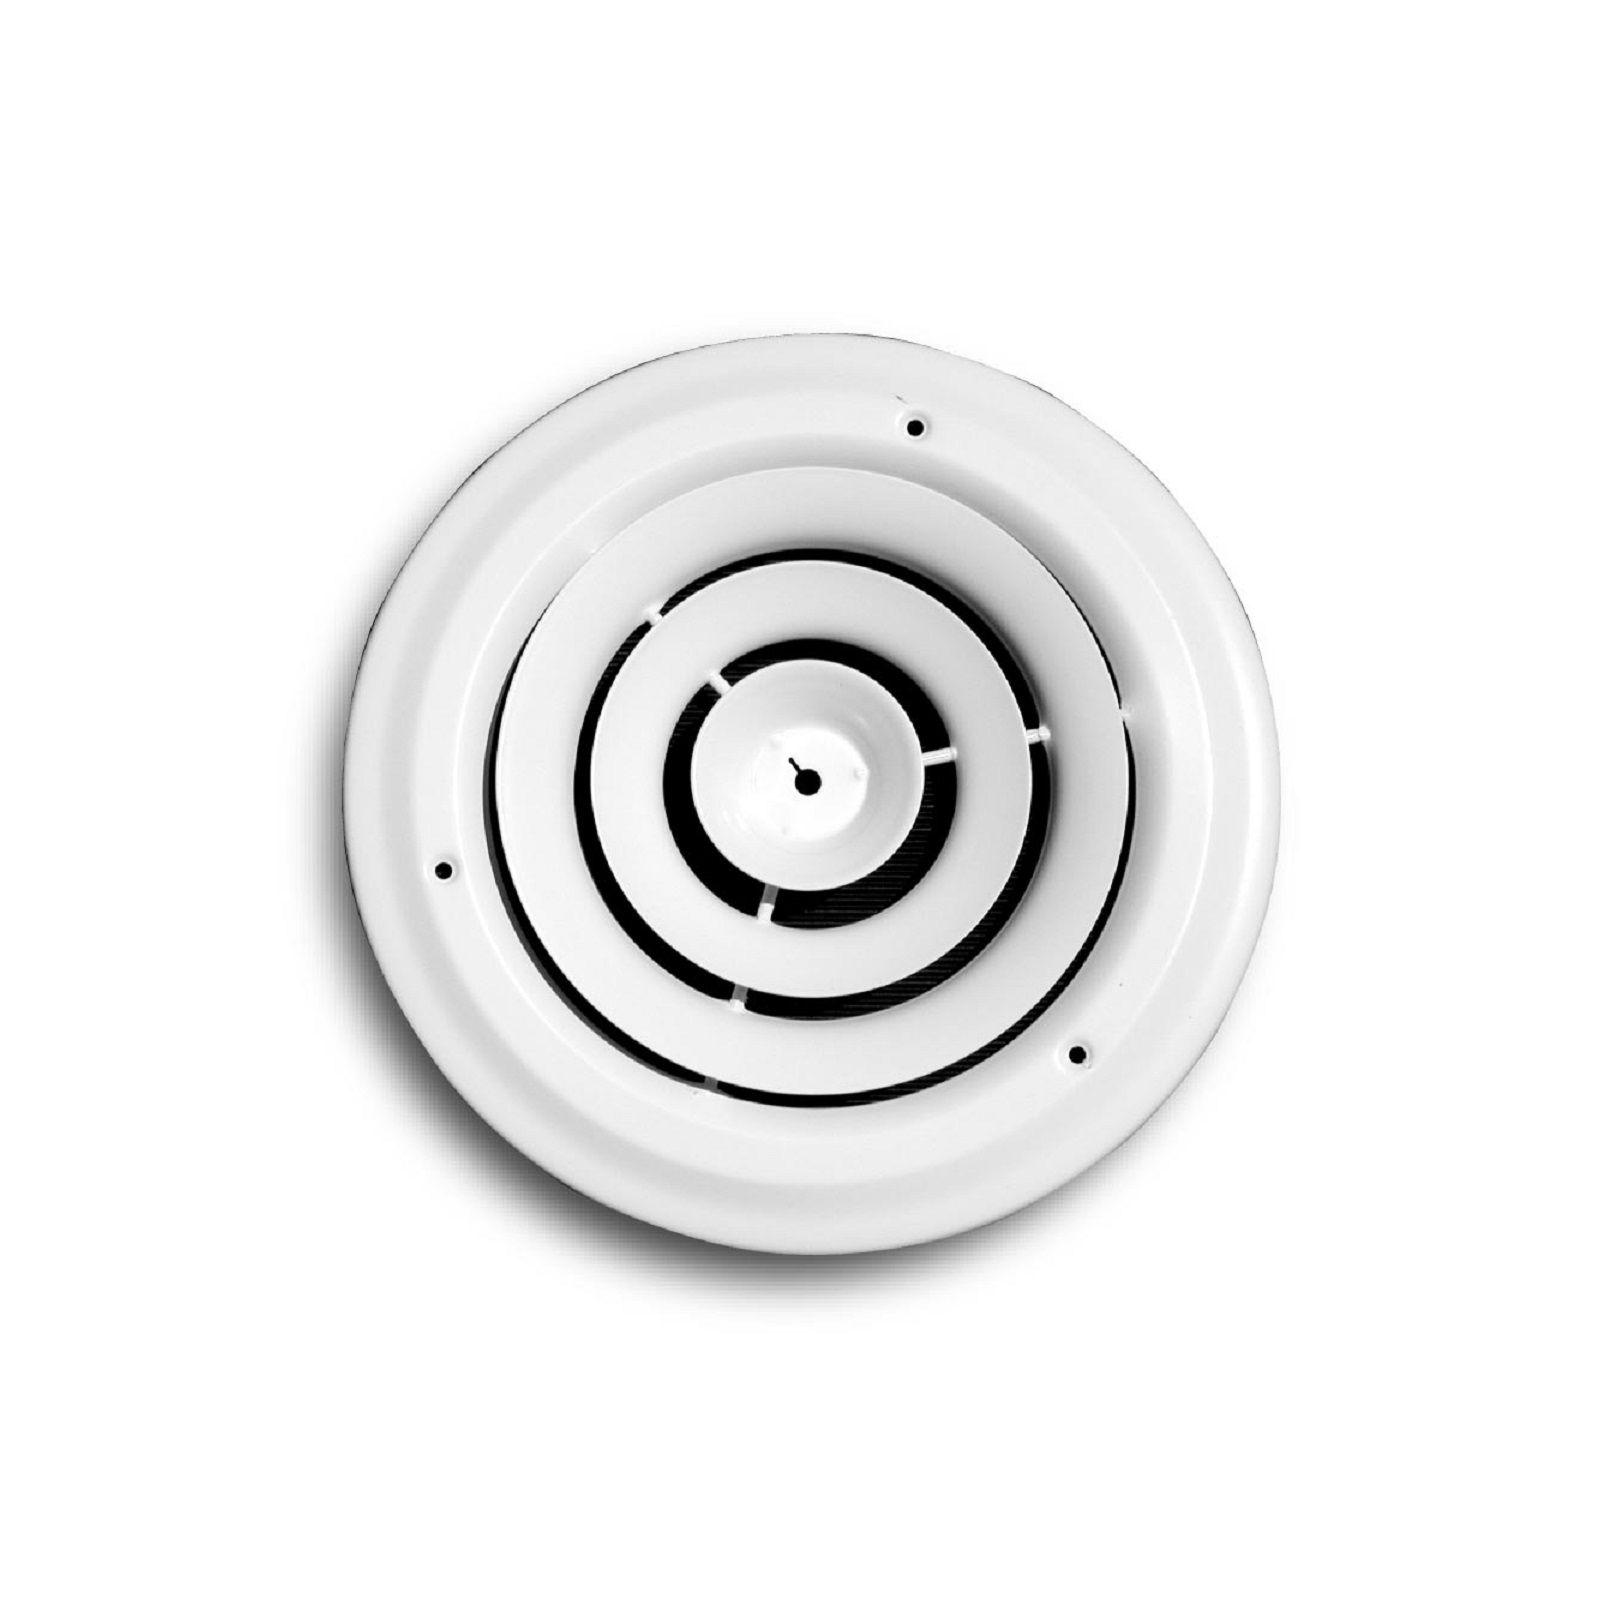 TRUaire 800-08 - Steel Round Ceiling Diffuser, White, 8""